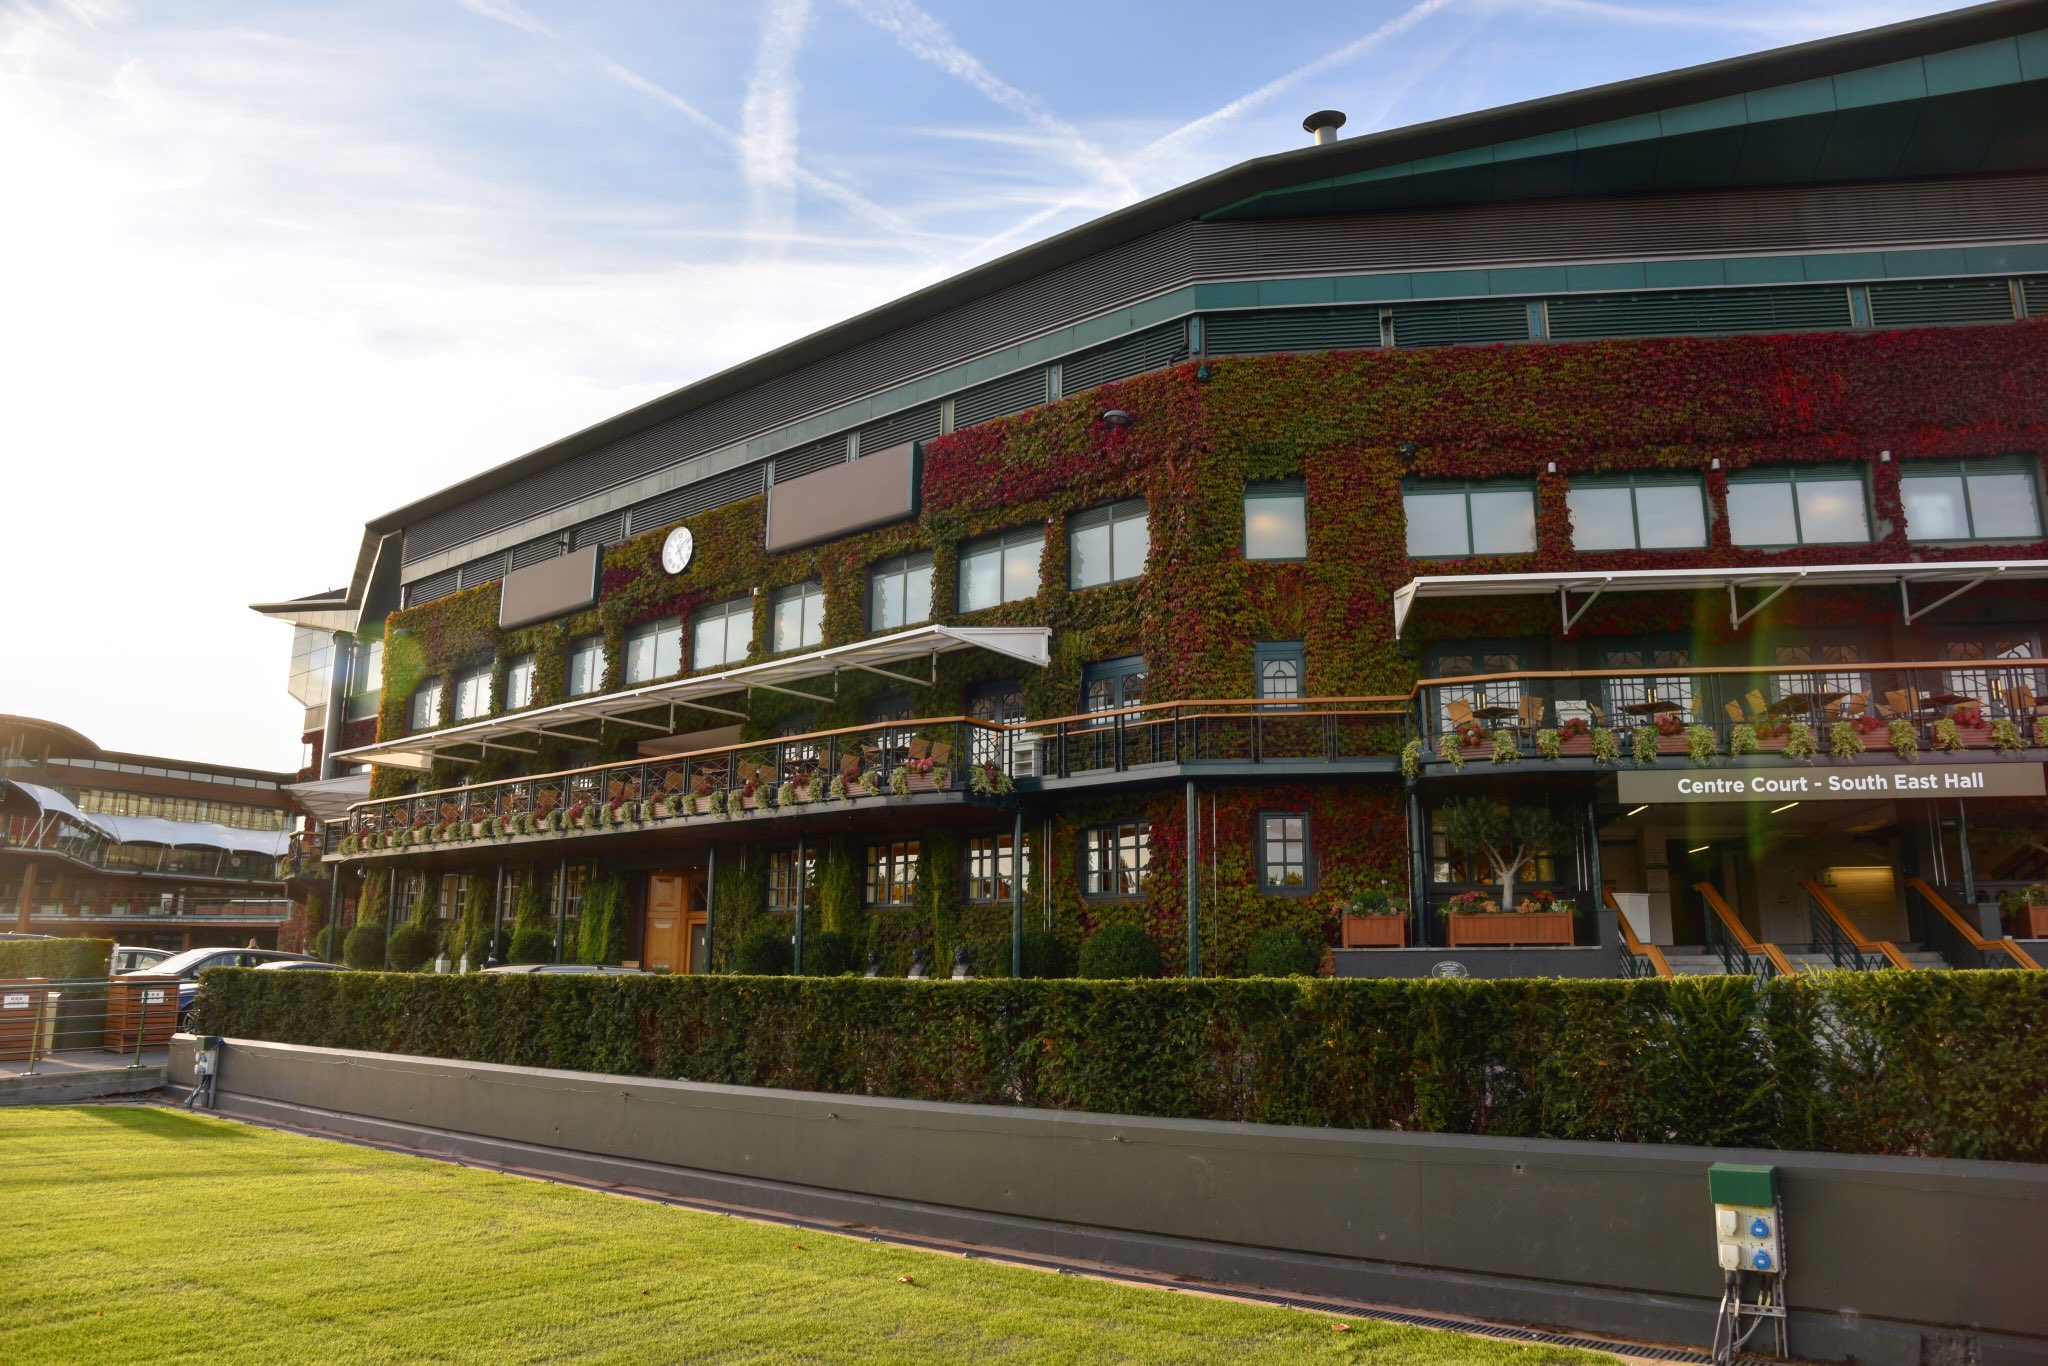 Autumn afternoons at #Wimbledon �� https://t.co/si5Y2WZrbM